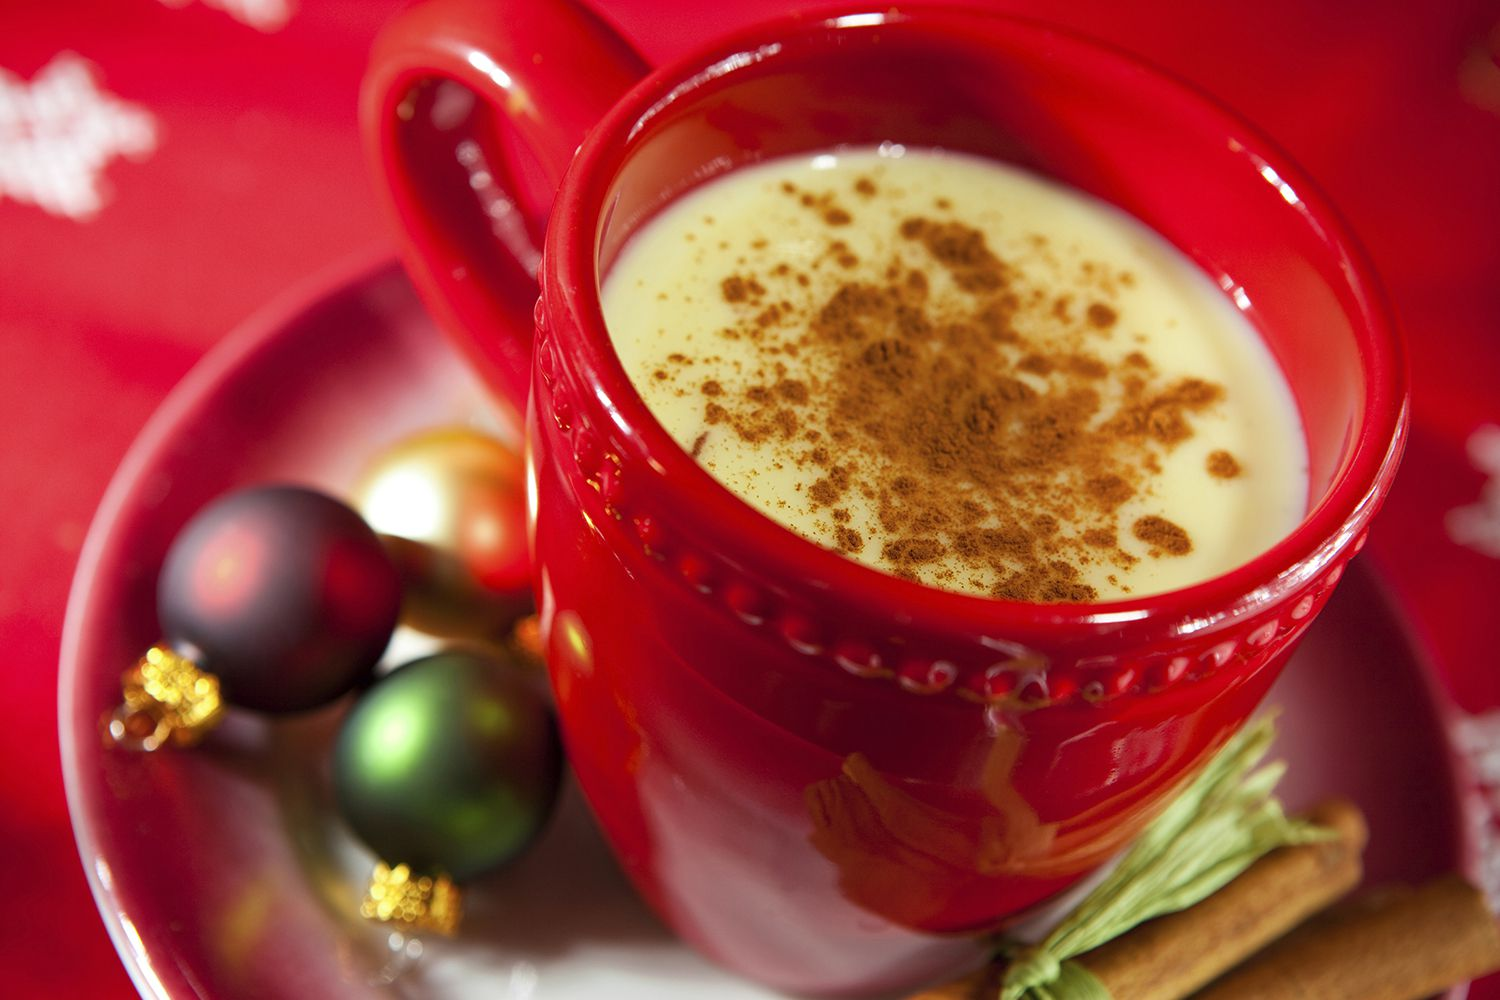 Cup of Aged Eggnog